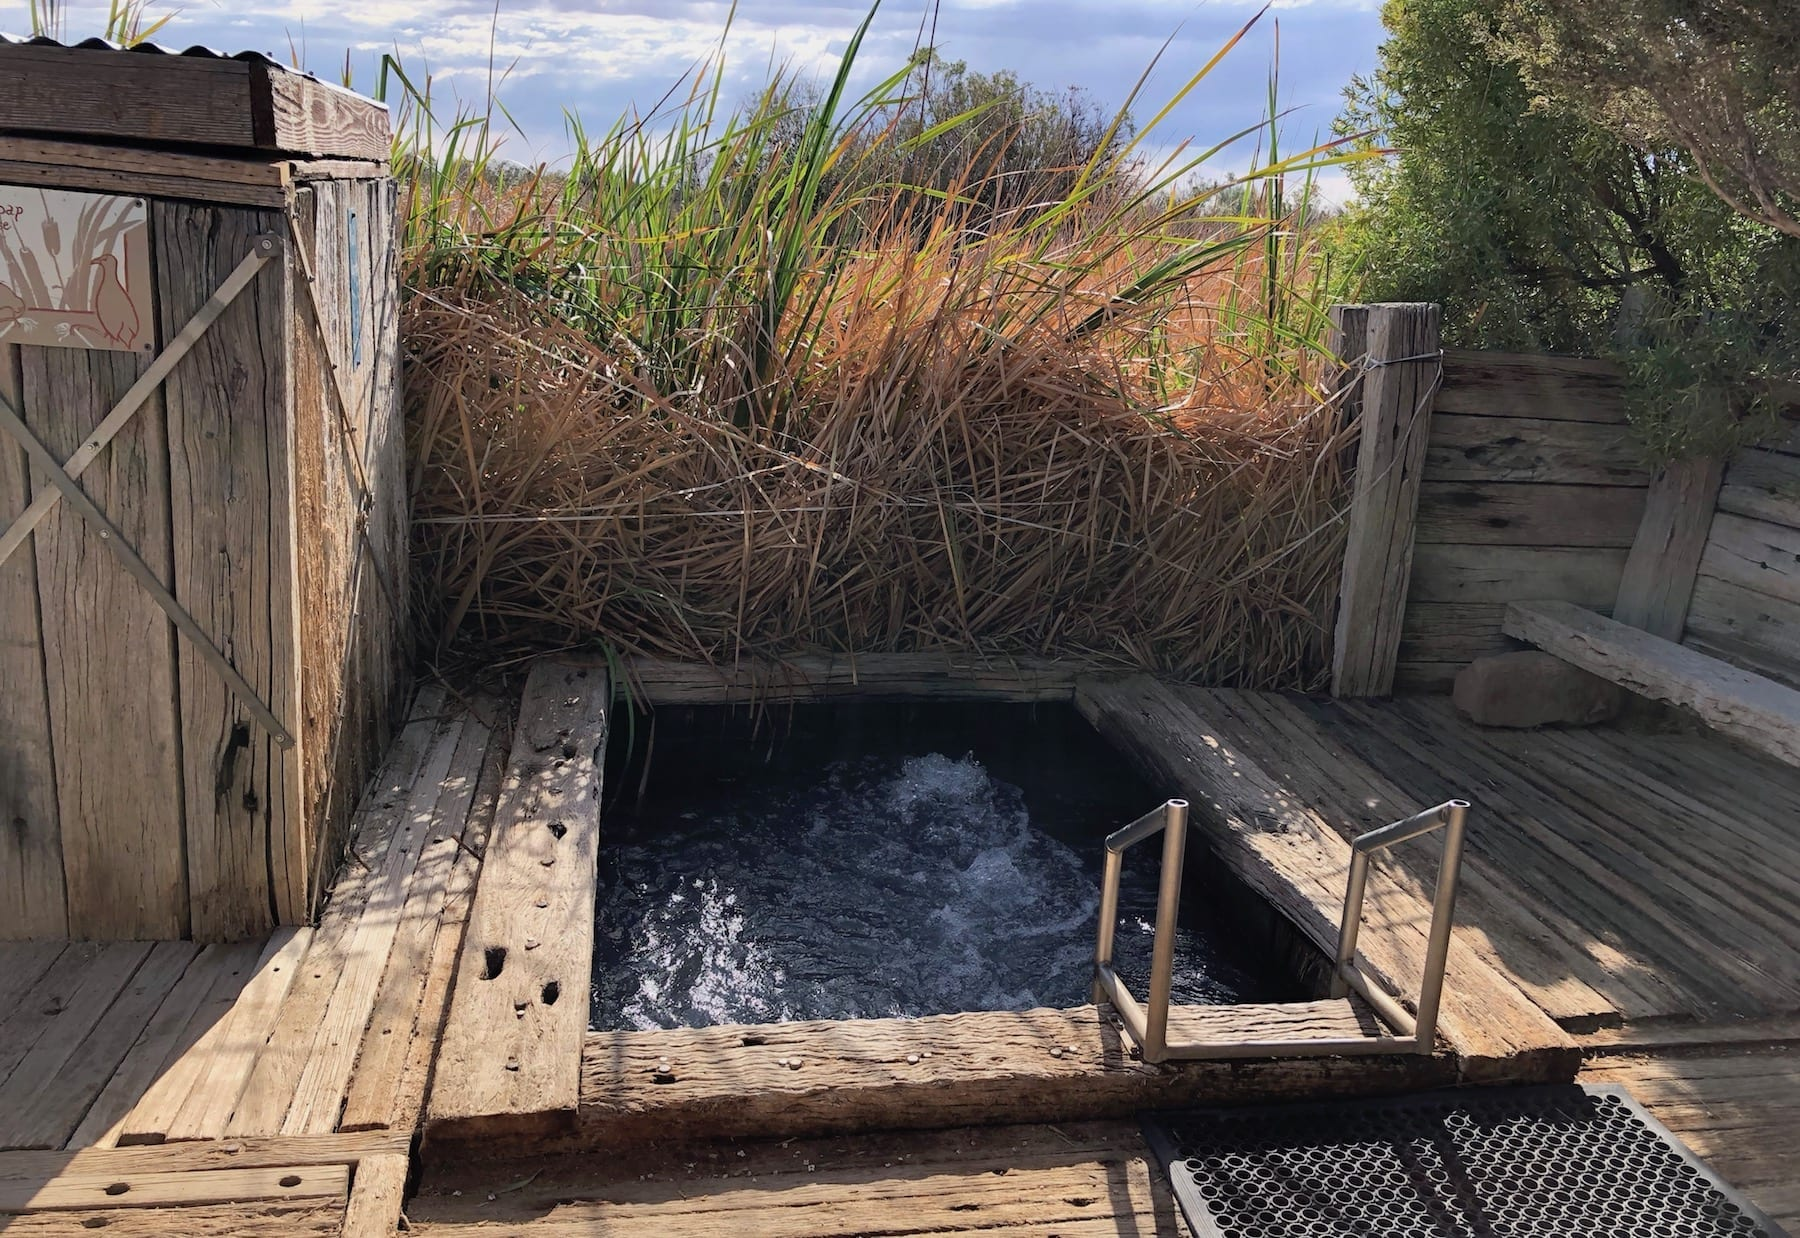 Coward Springs natural spa. The water flows into the wetlands behind the spa.